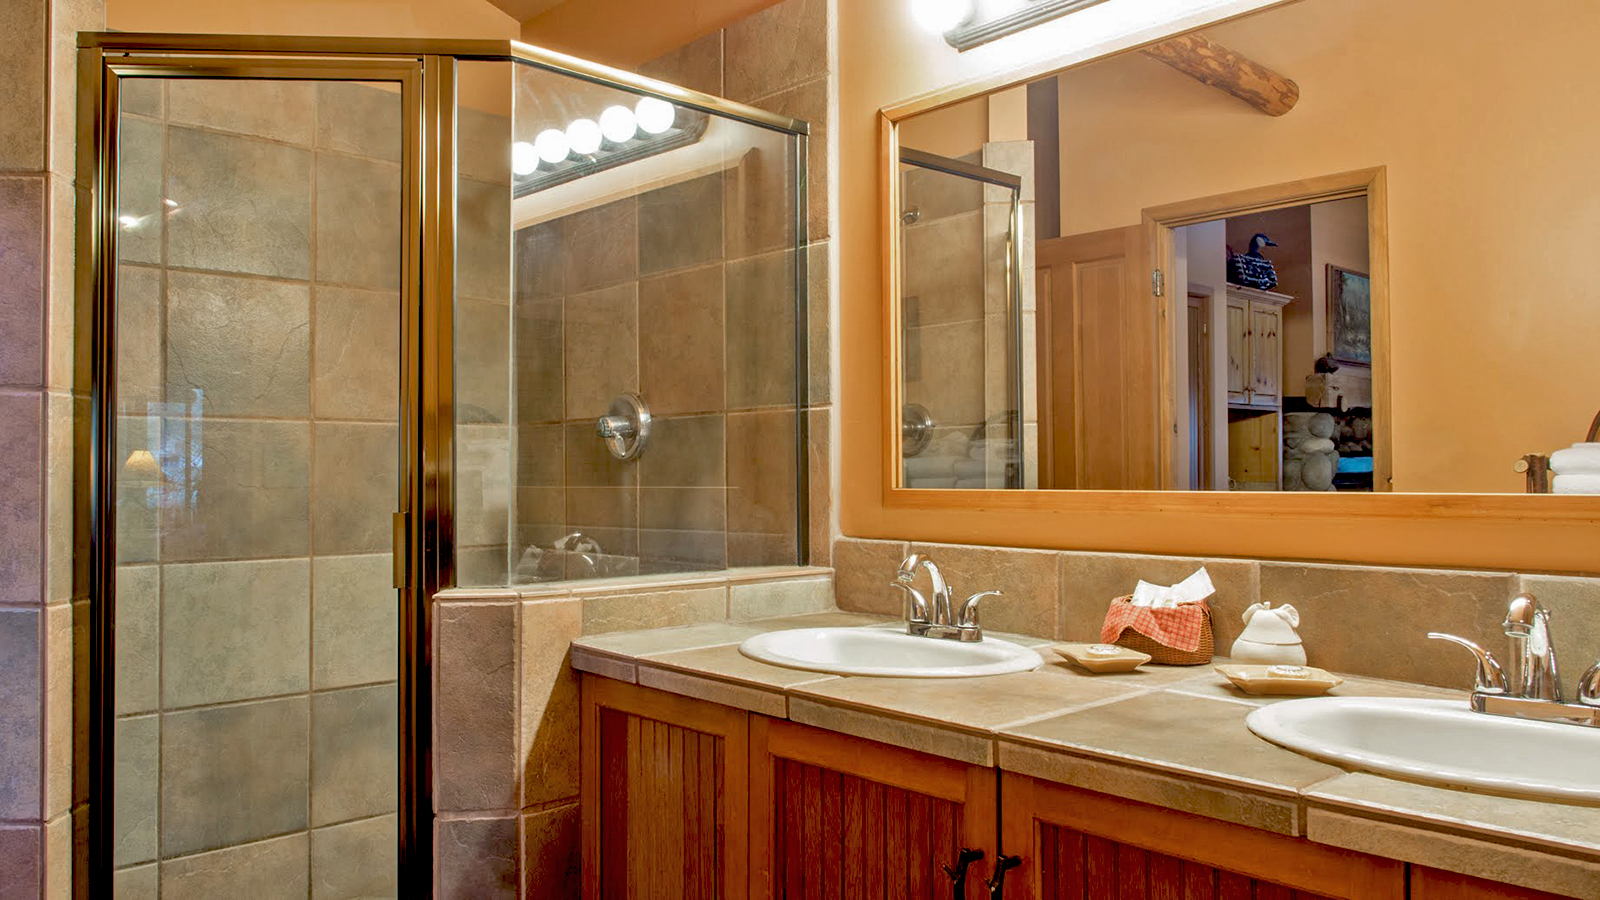 The Spa Suites feature a very large bathroom